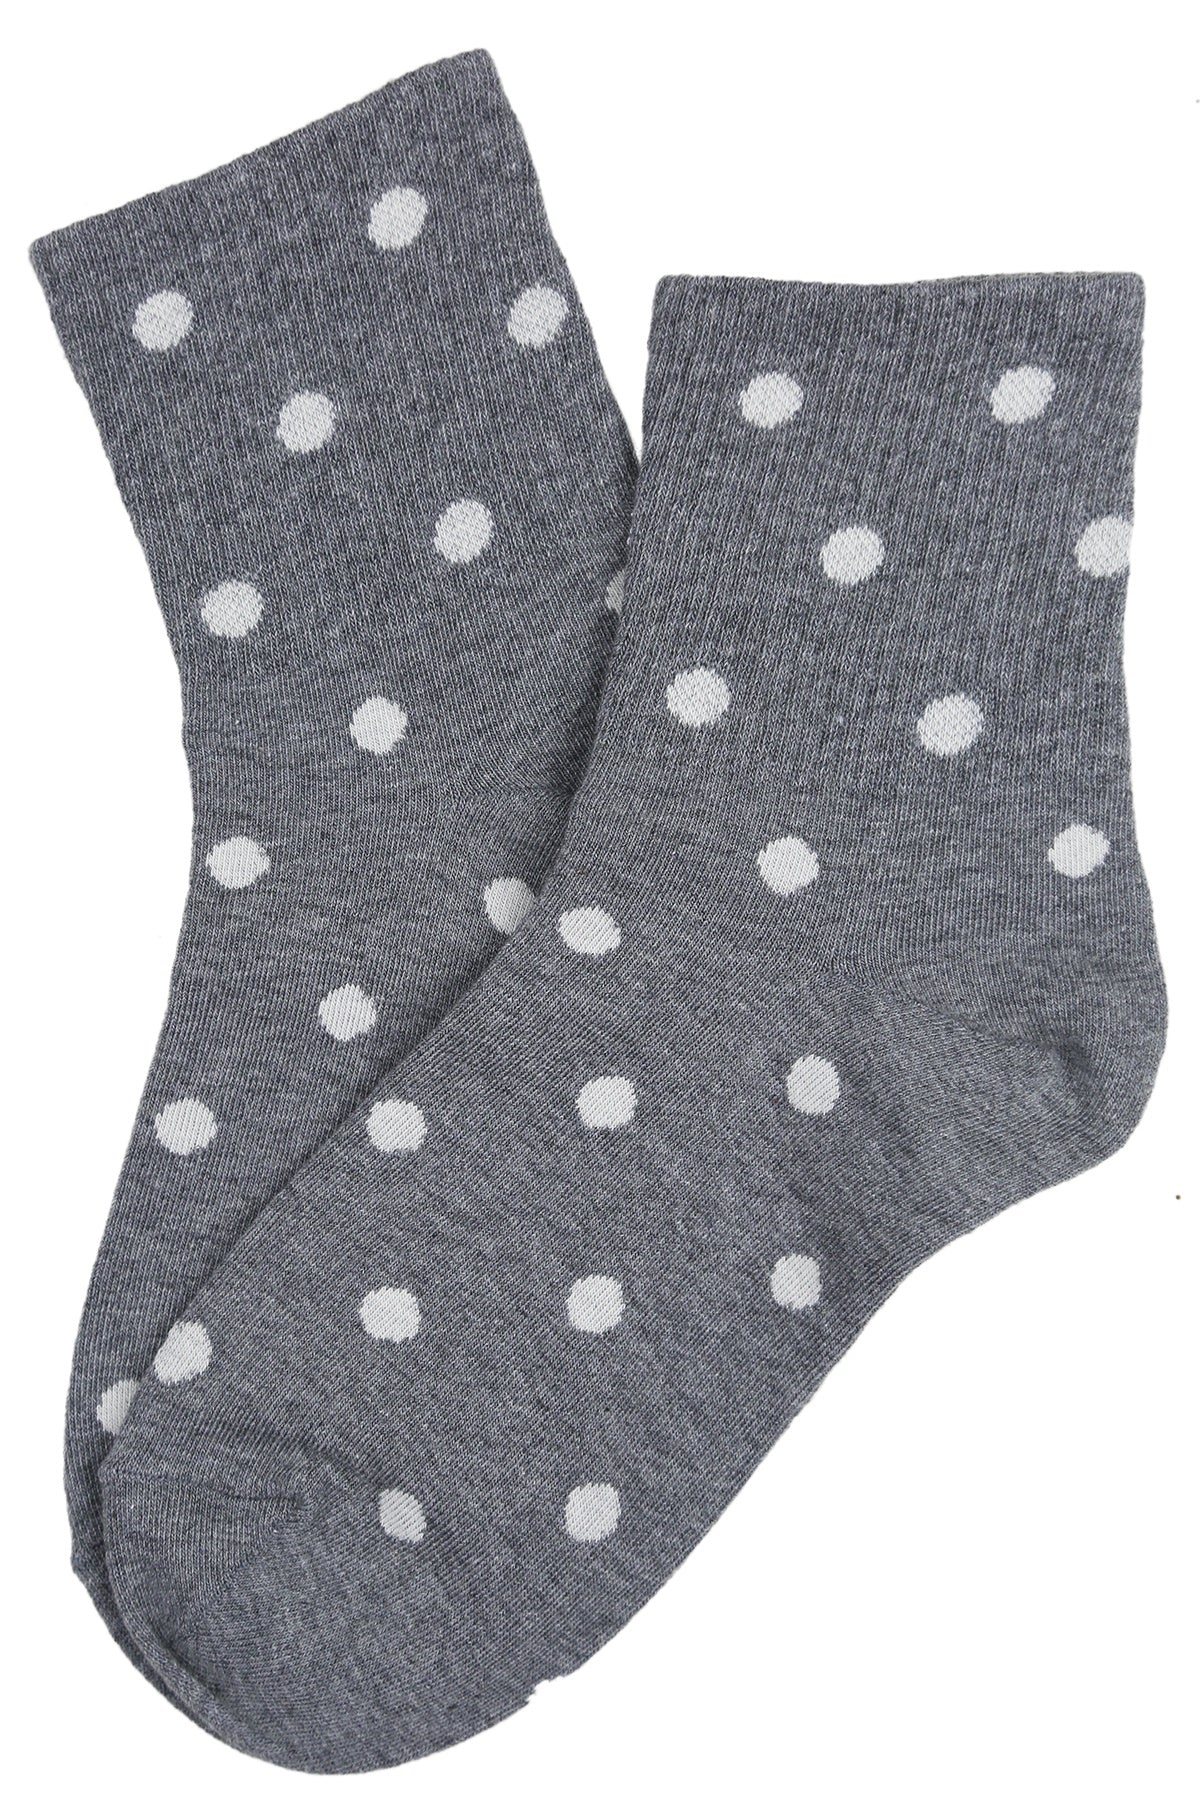 Sally Spotty Cotton Socks Grey